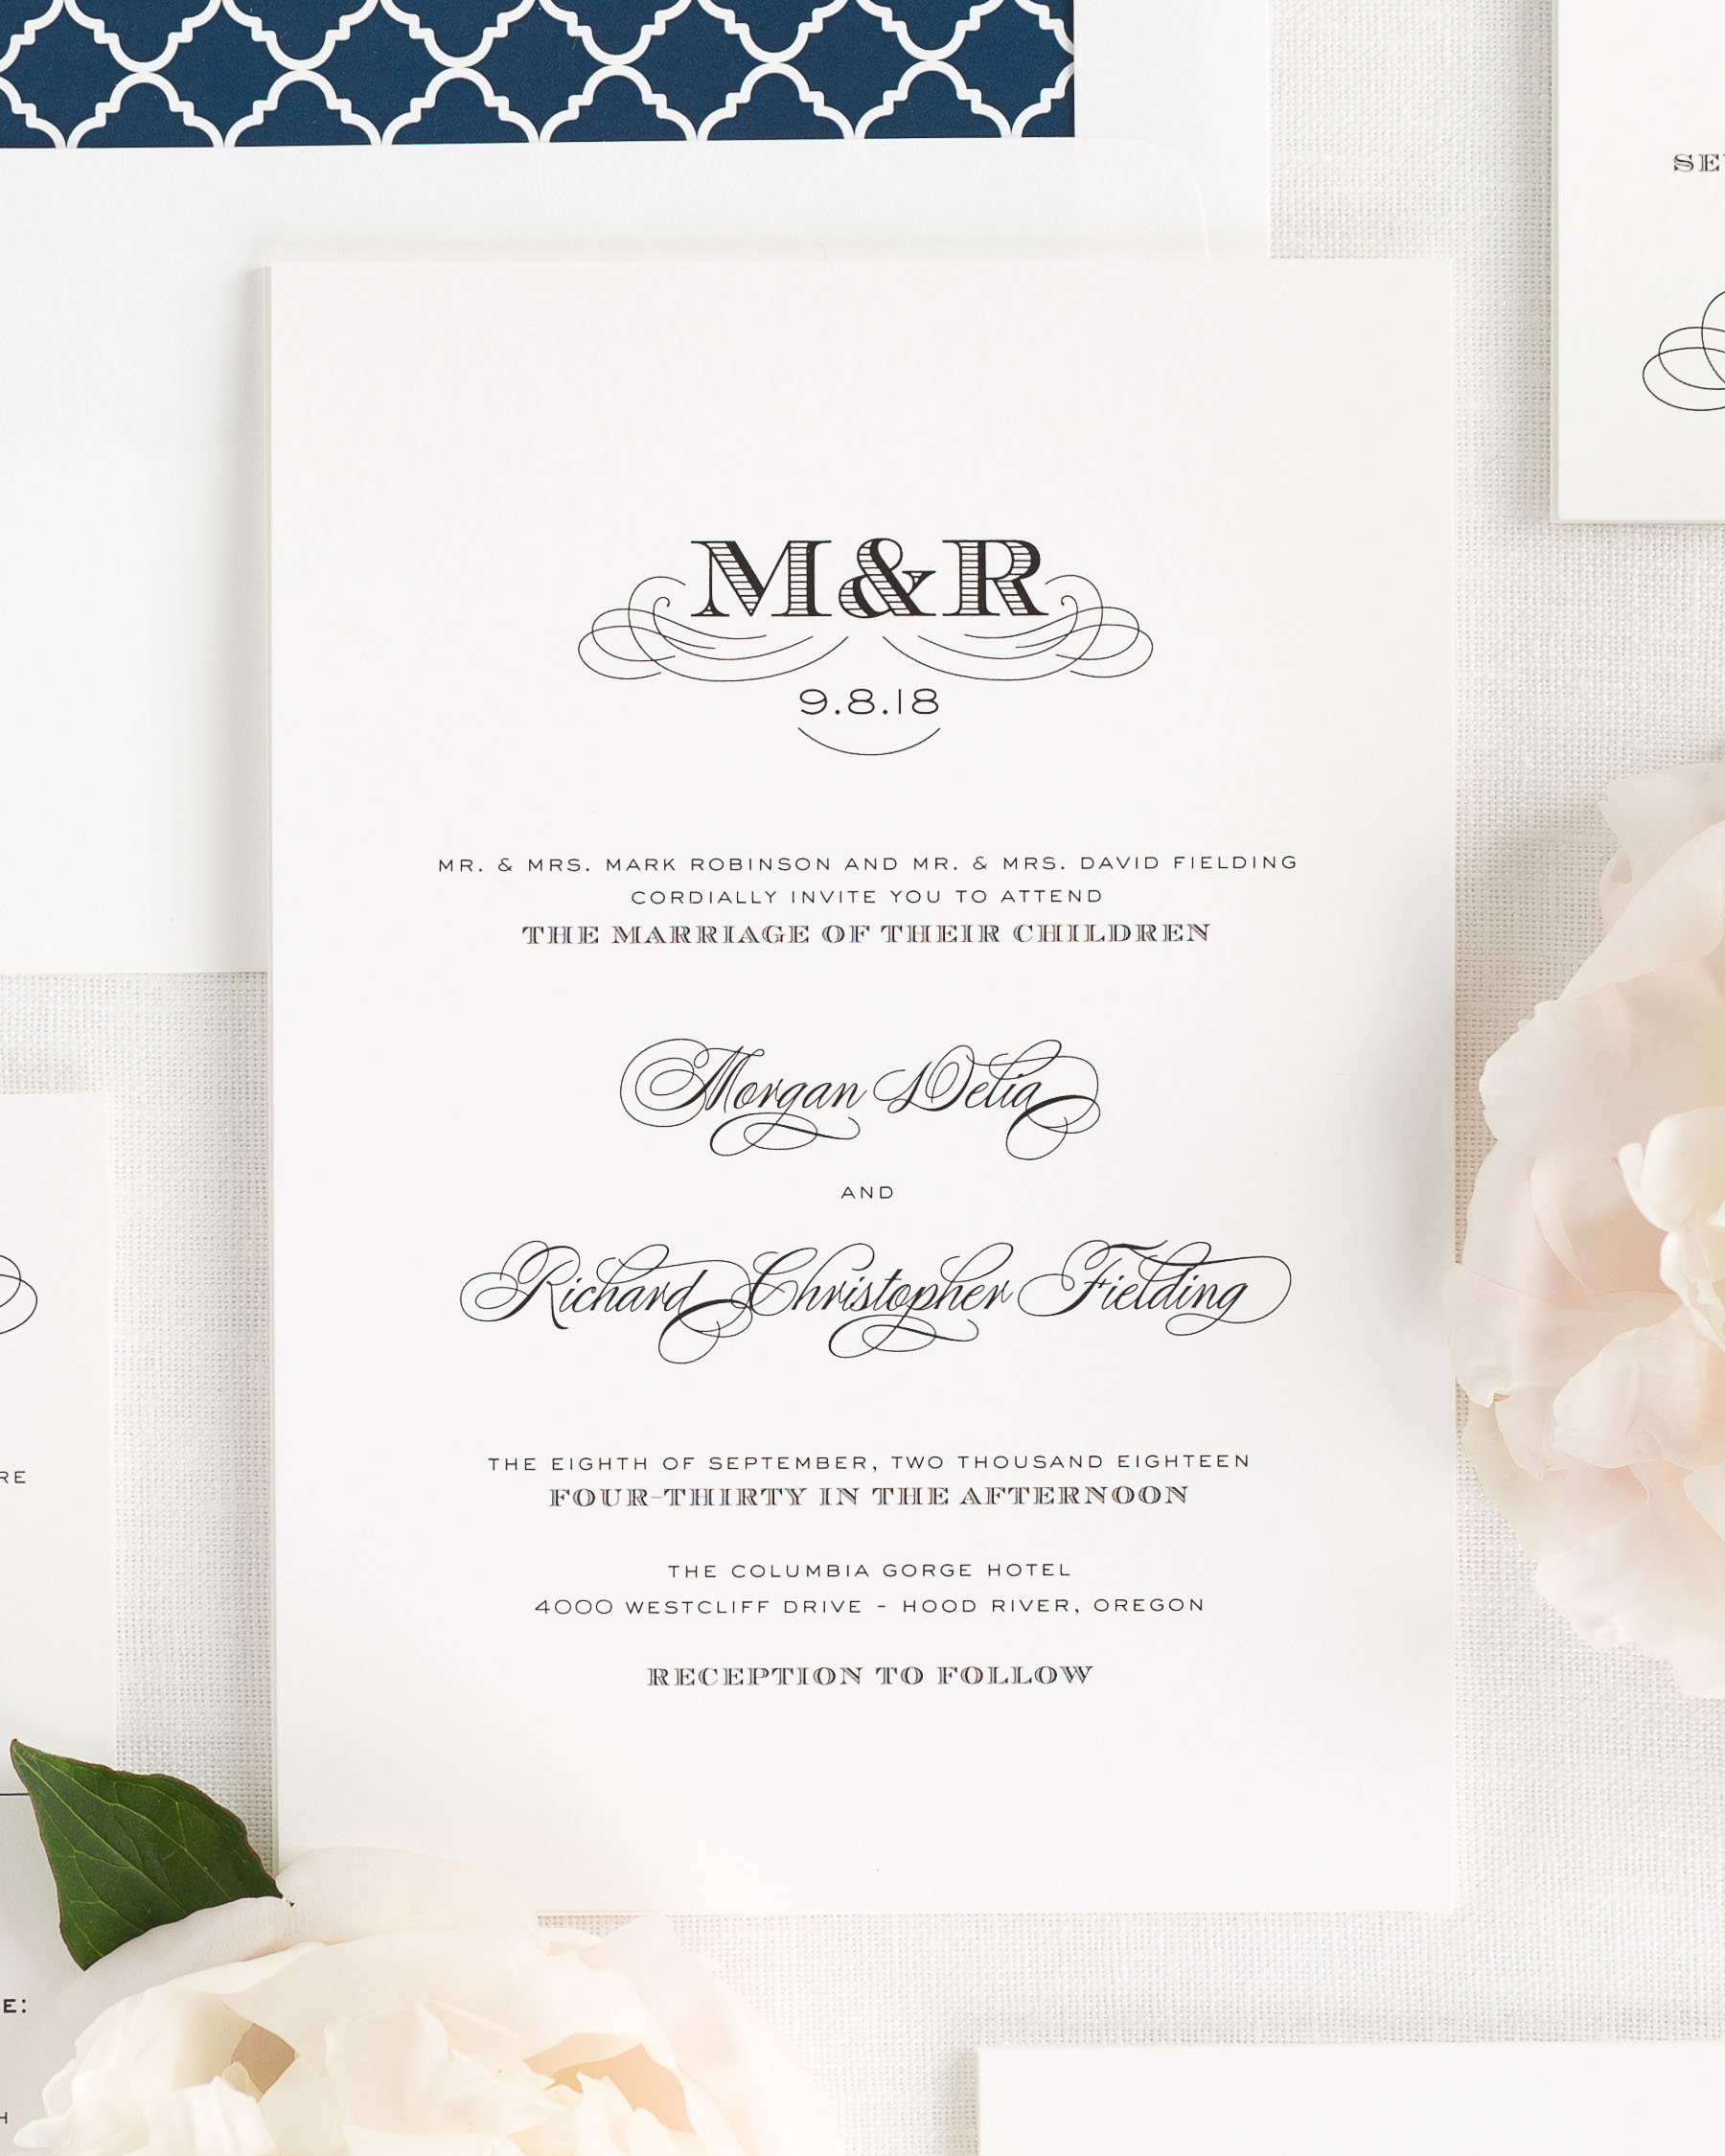 Antique Monogram Wedding Invitations Wedding Invitations by Shine